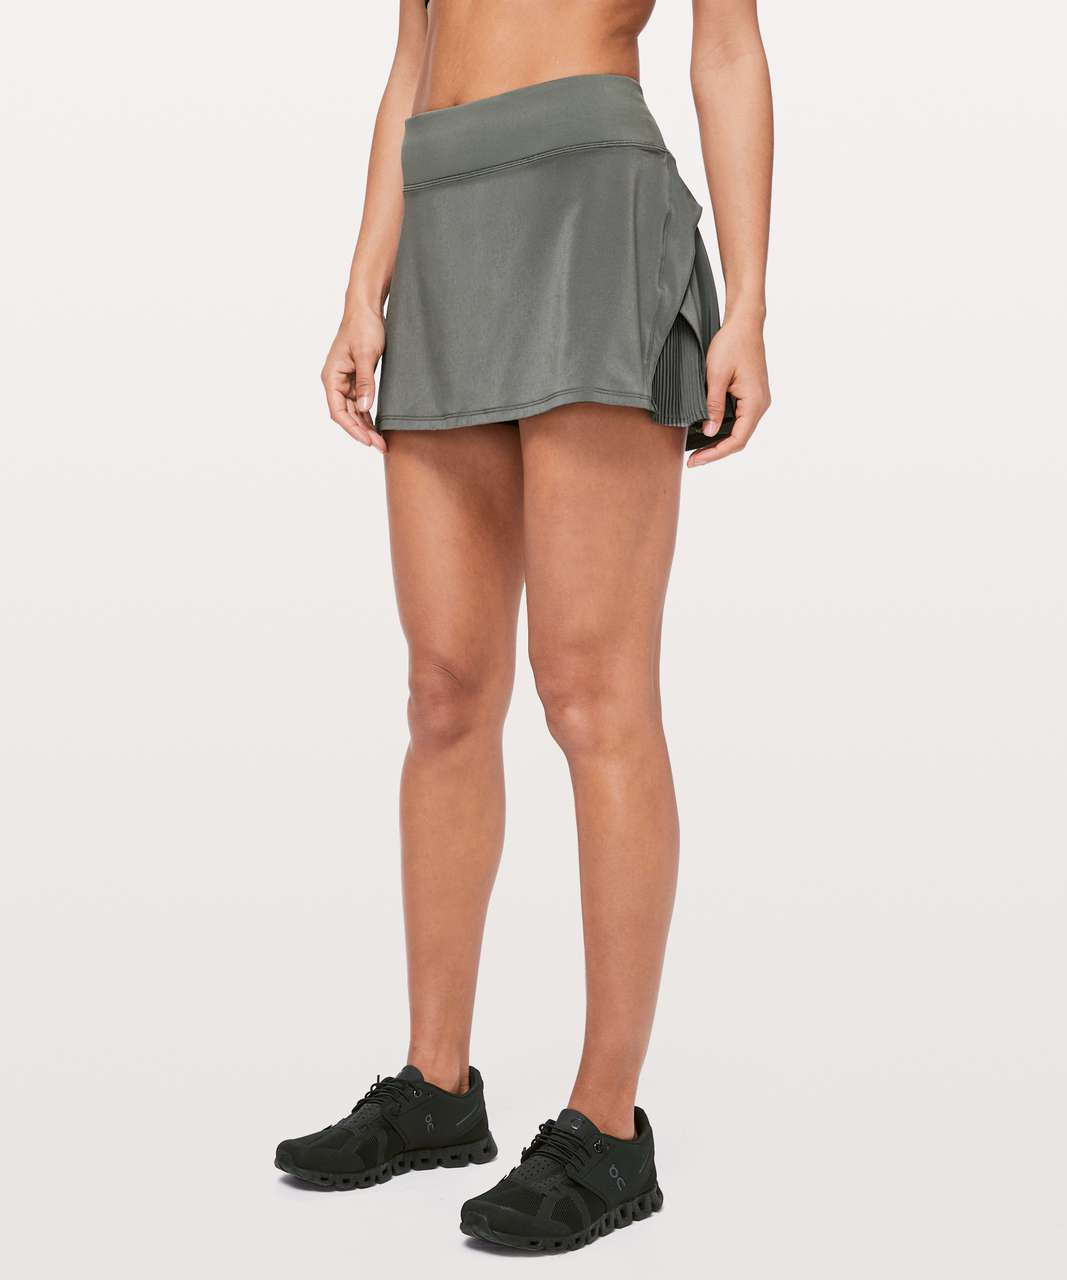 "Lululemon Play Off The Pleats Skirt *13"" - Grey Sage"